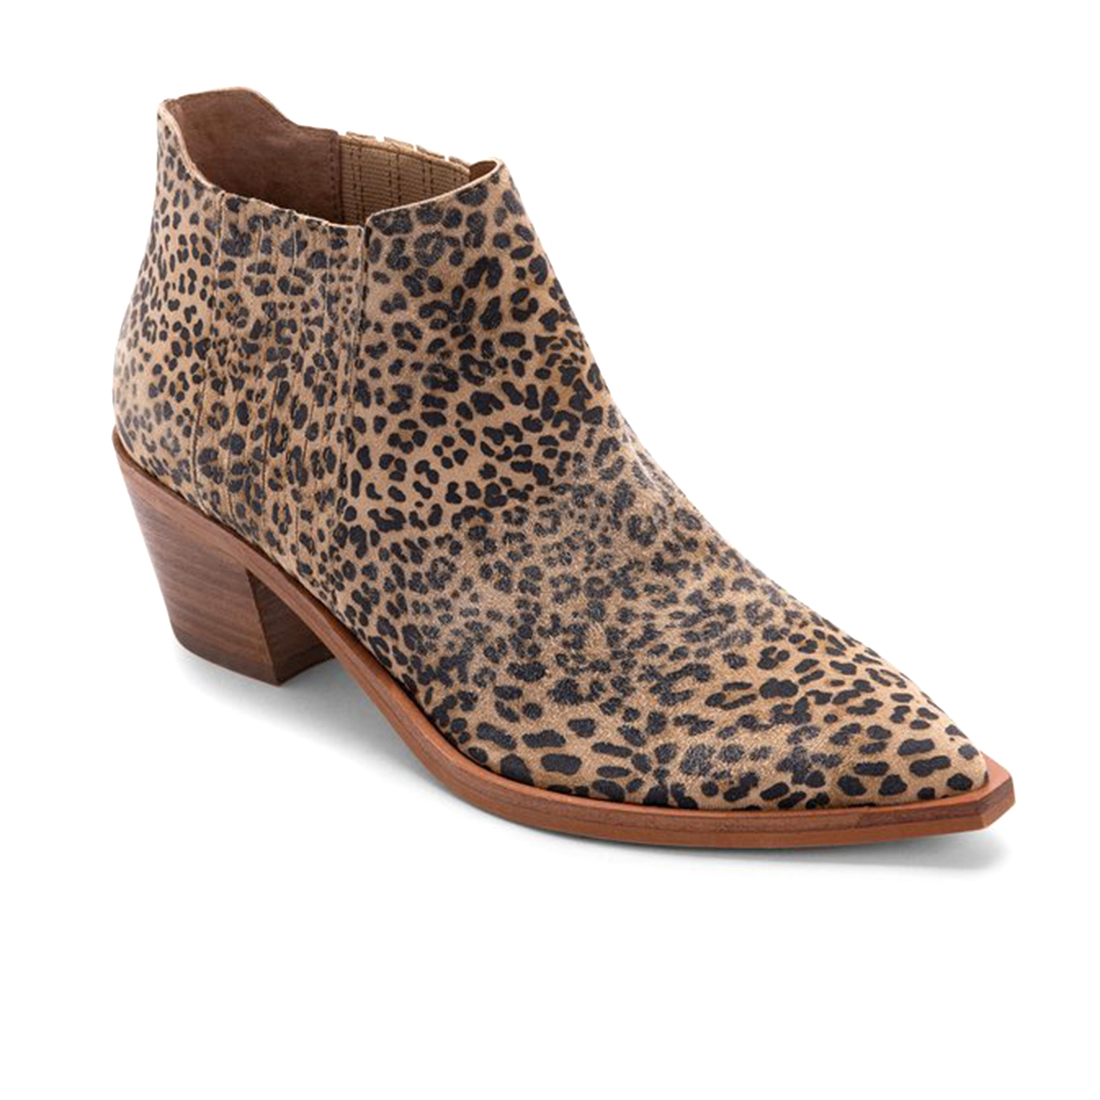 Dolce Vita Shana Boot In Blacktan Sueded Leopard 73549